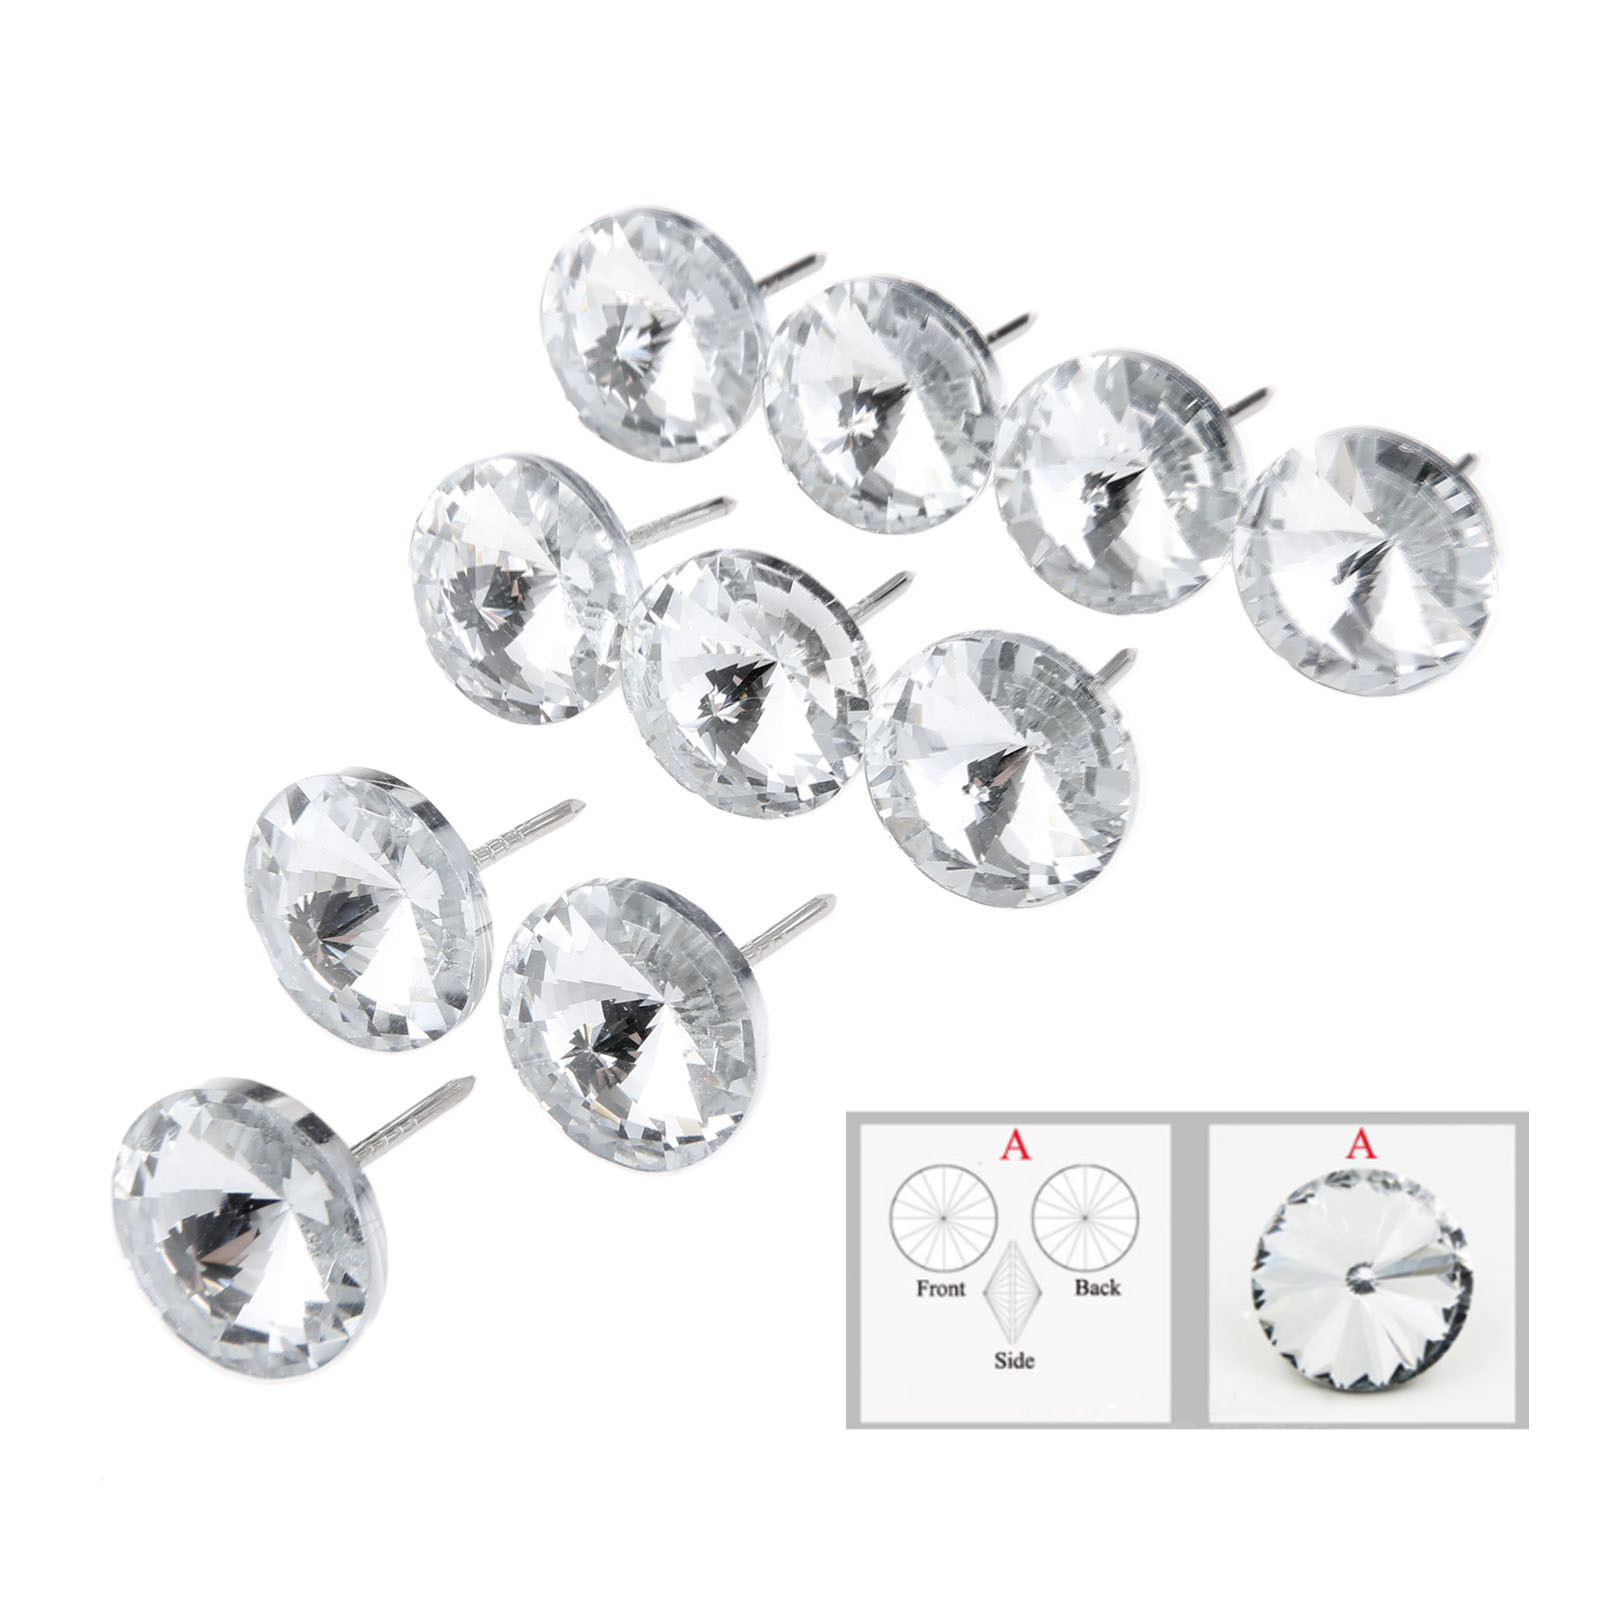 DRELD 10Pcs Diamond Crystal Upholstery Nails Decorative Button Tack Studs Pins 20mm Dia Sofa Wall Decoration Furniture Accessory